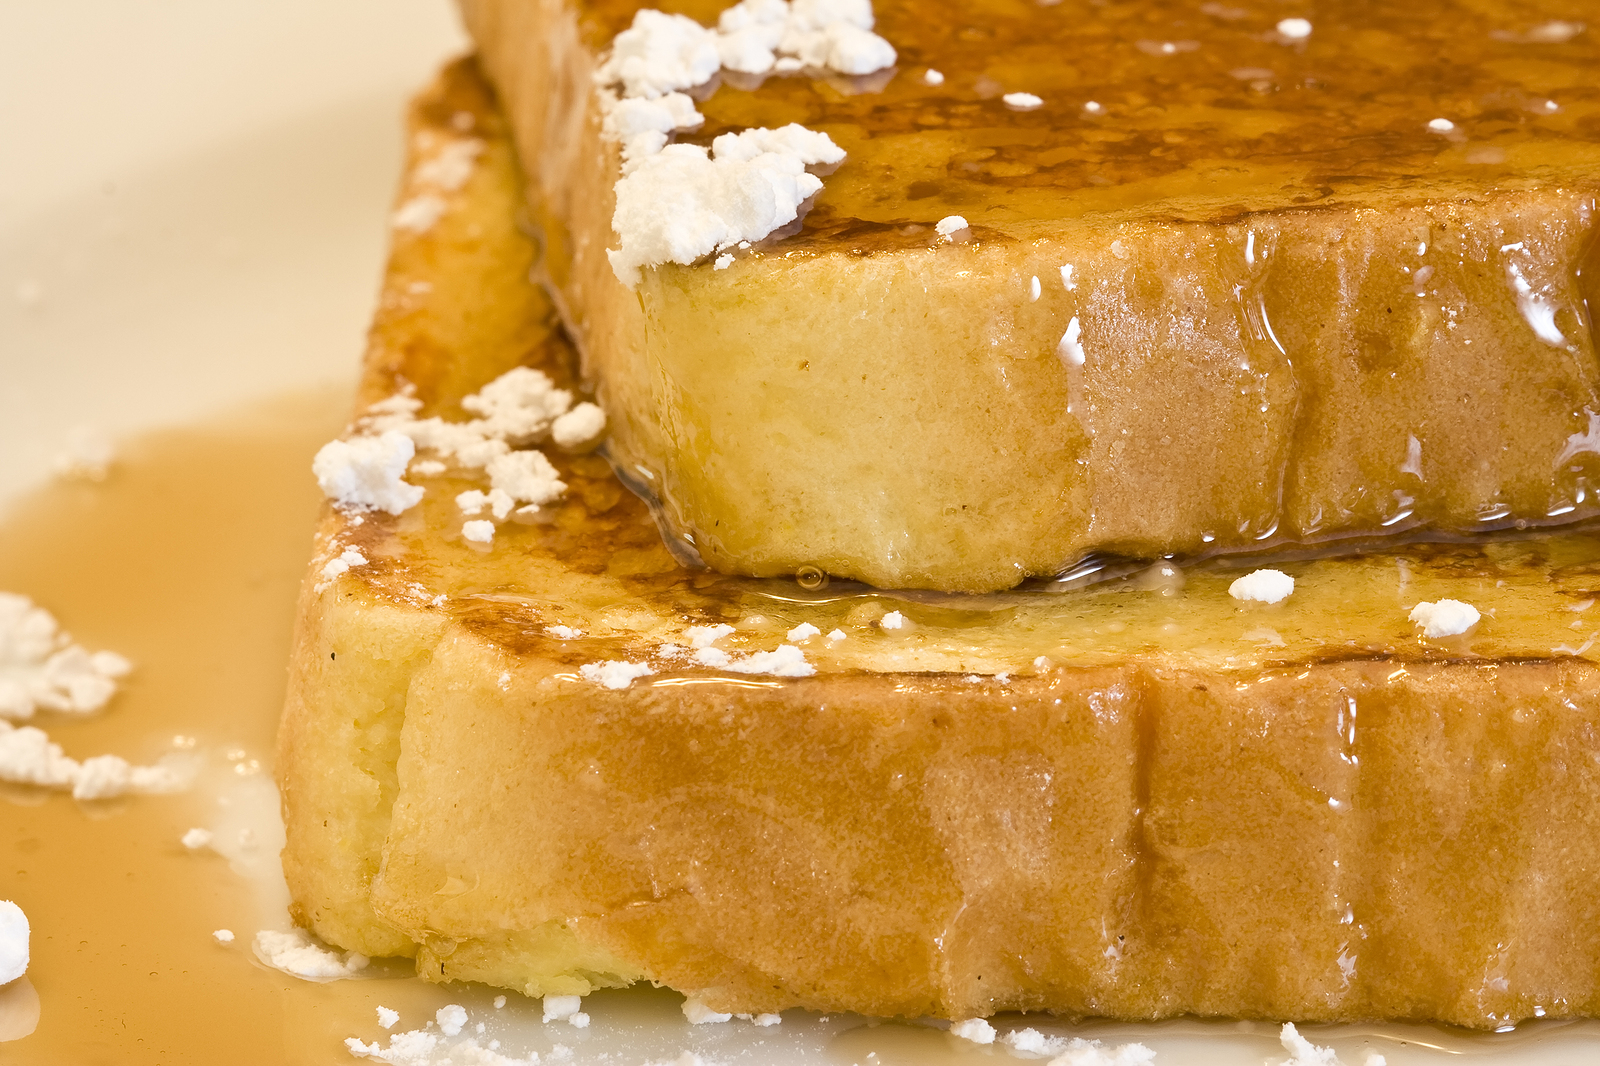 bigstock-French-Toast-2079125.jpg